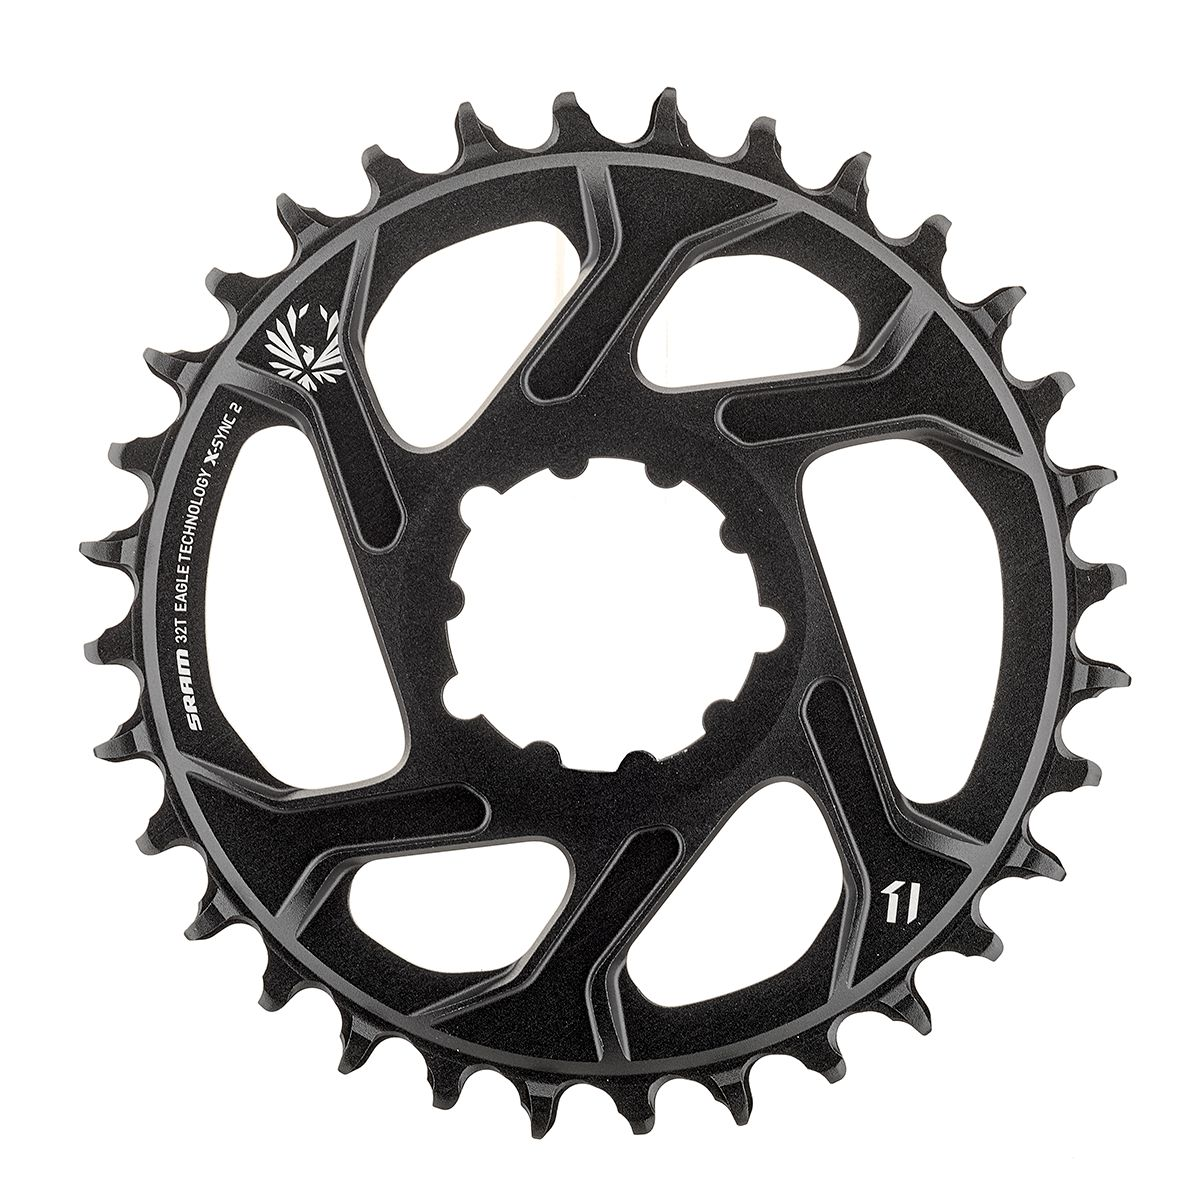 Eagle X-SYNC 2 Direct Mount Boost Chainring Aluminium, 12 speed, 3mm Offset